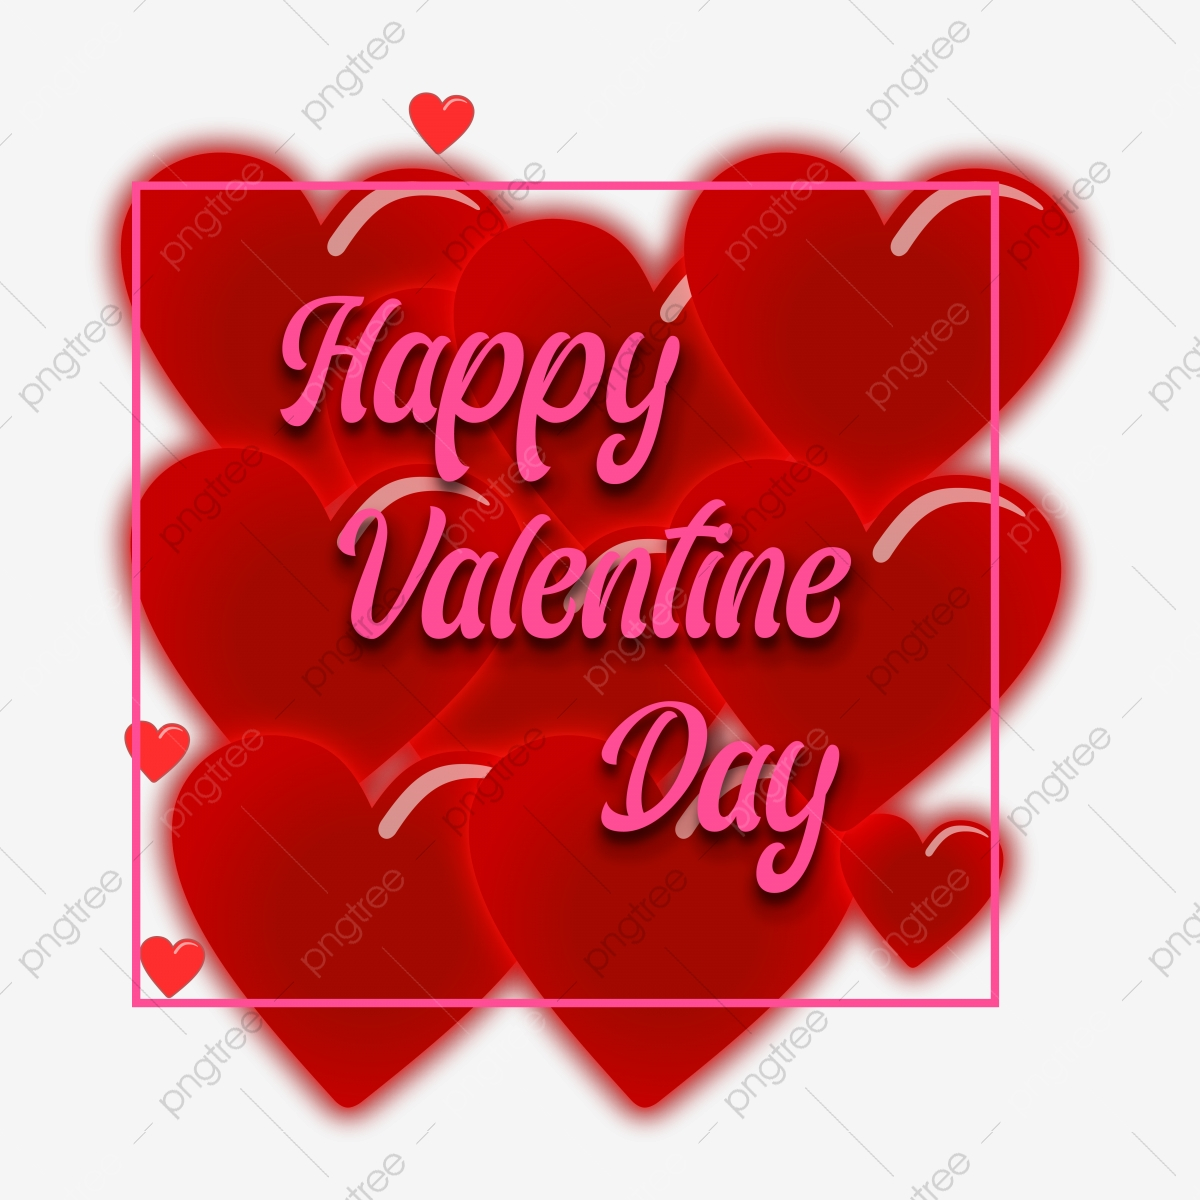 Valentine S Day Wish Photo Valentine S Day Wish Photo Valentines Valentines 2021 Png And Vector With Transparent Background For Free Download